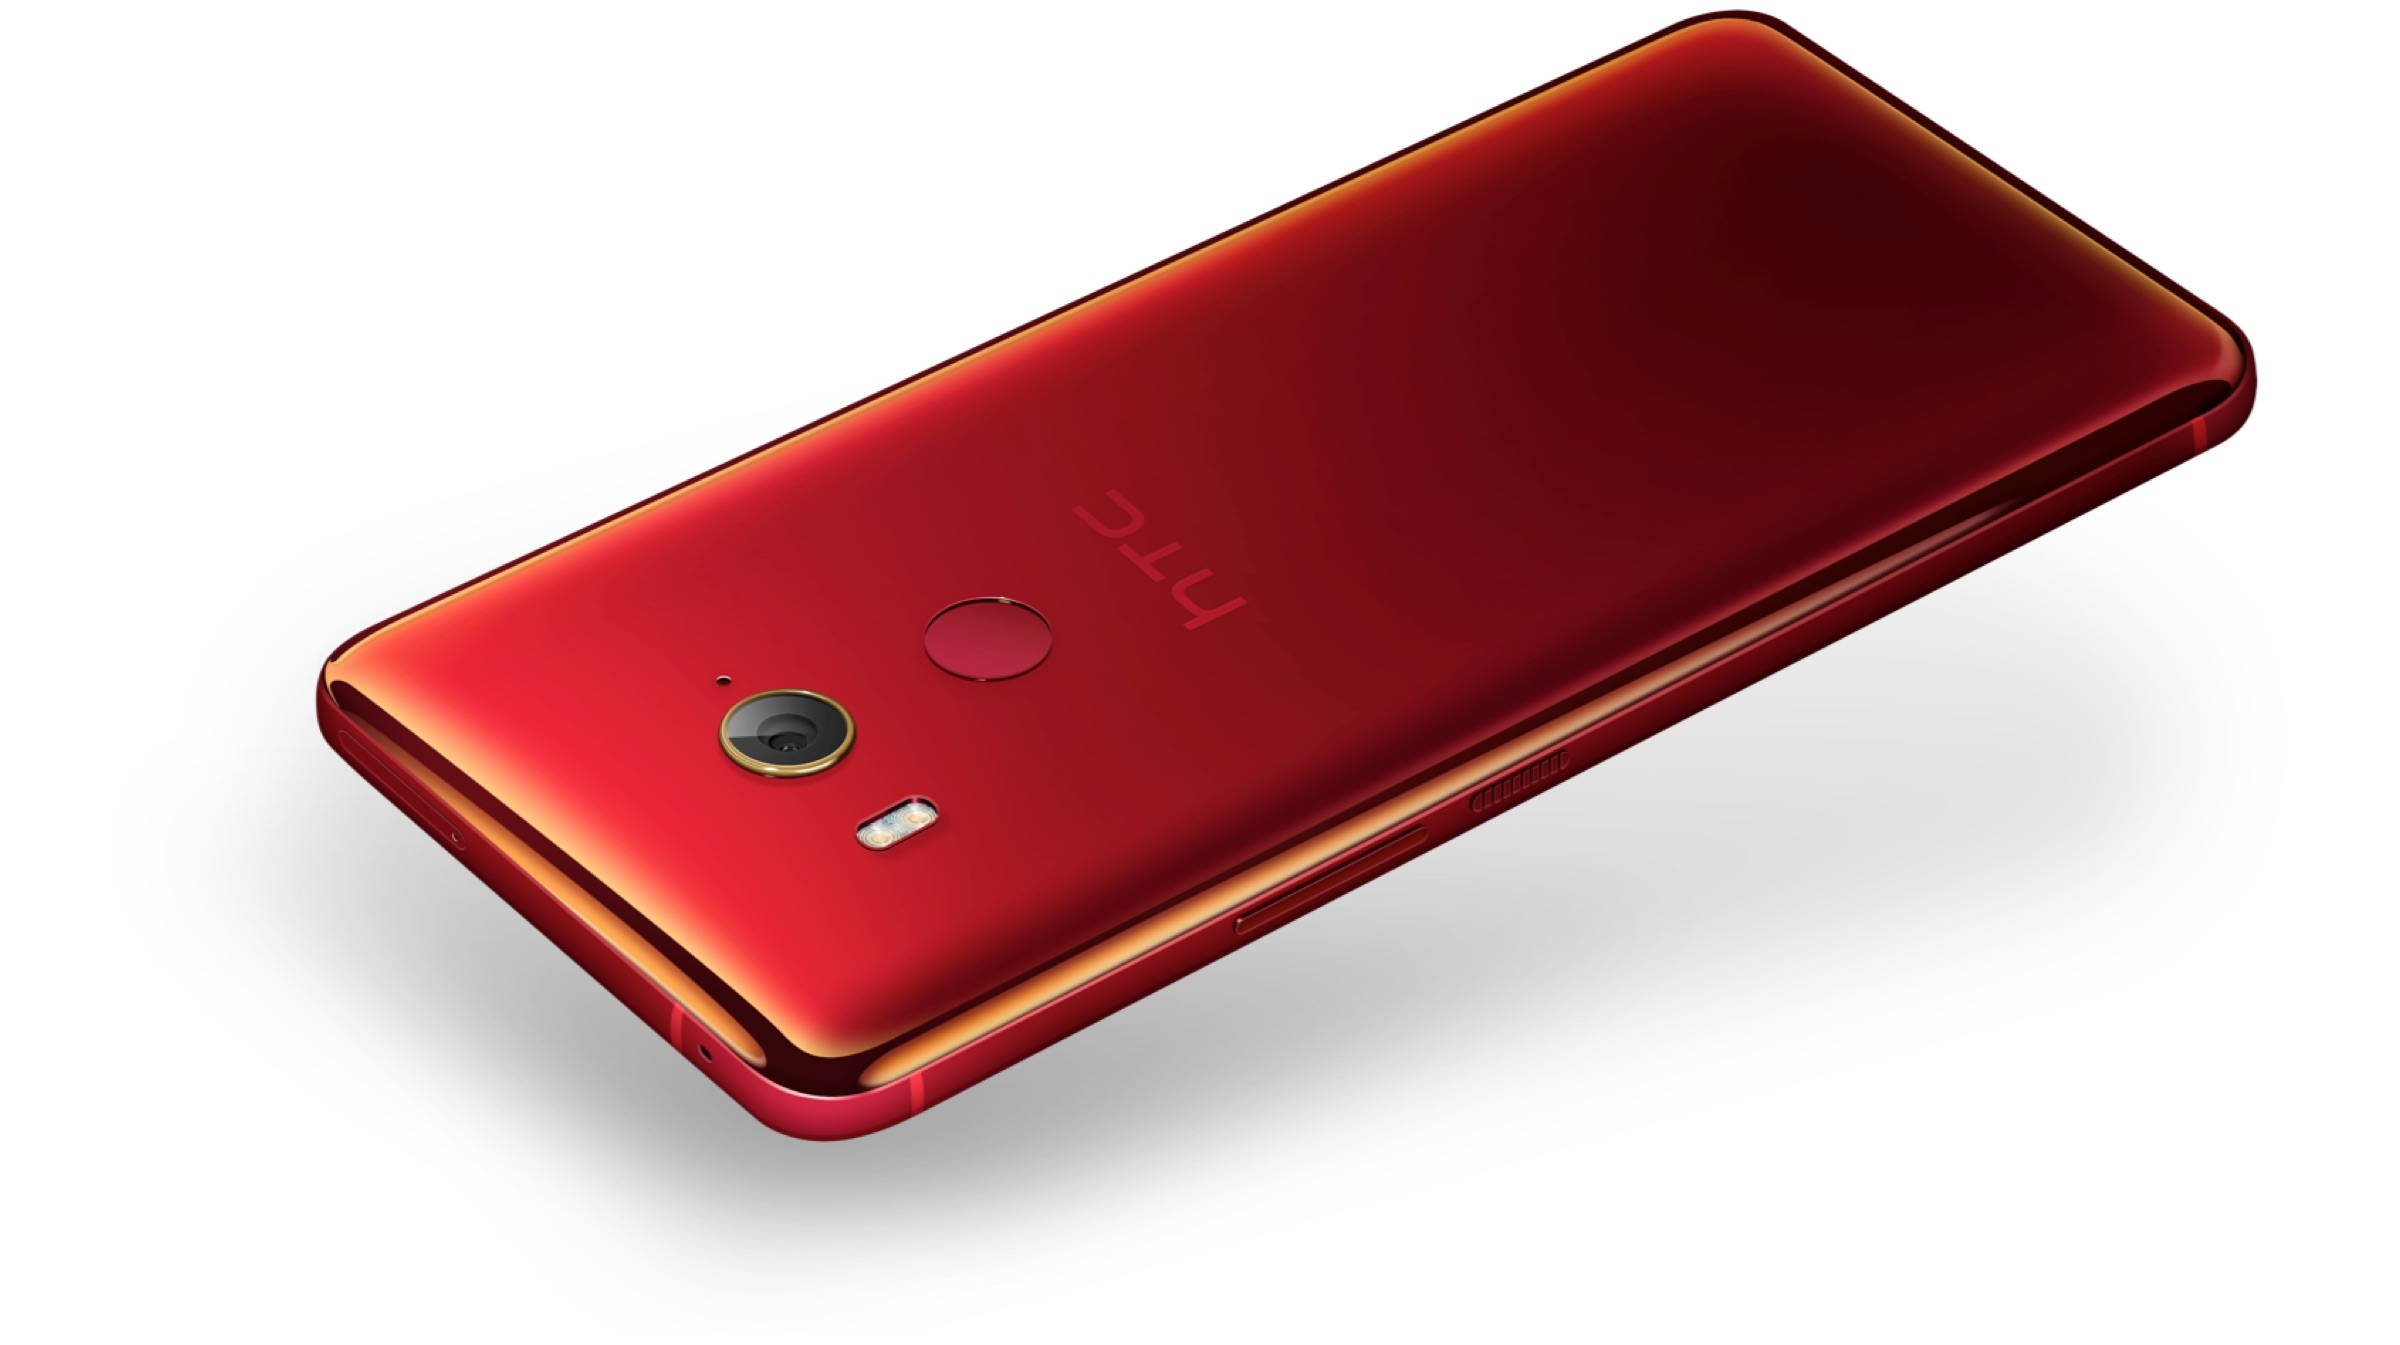 HTC U12 will not be announced at MWC 2018